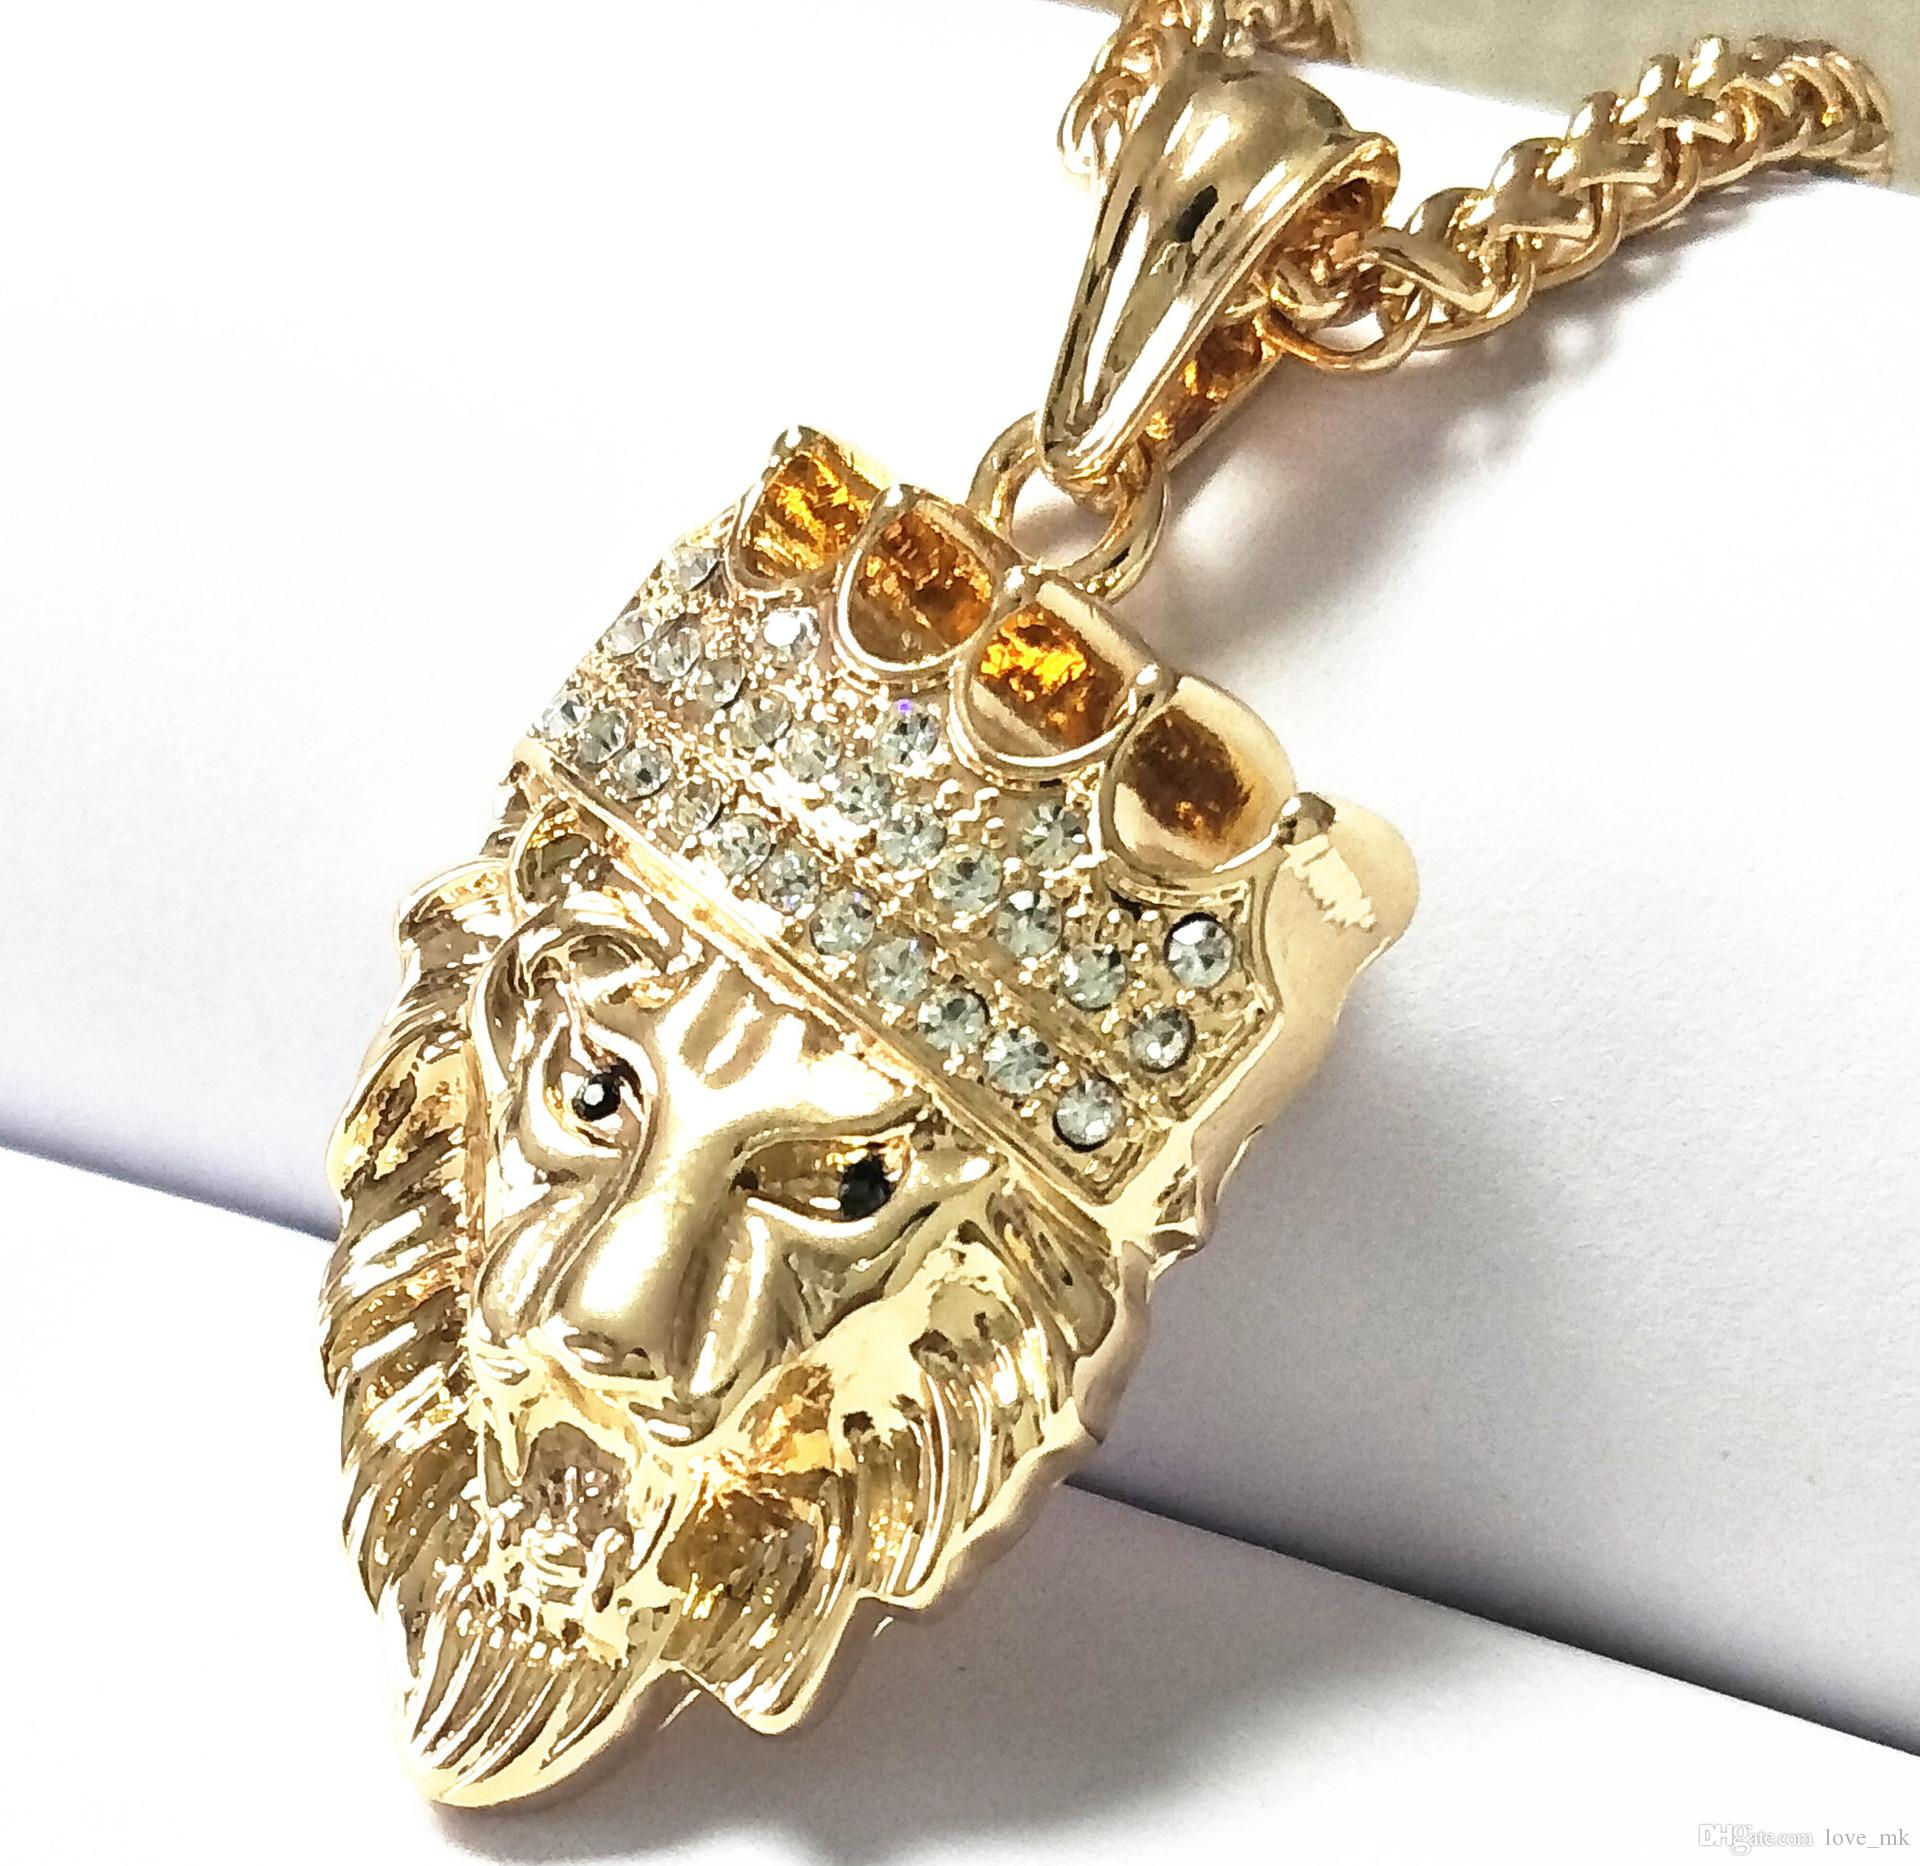 jewelry leo lion necklaces enlarged necklace products malachite the yellow pendant gold realreal with chain